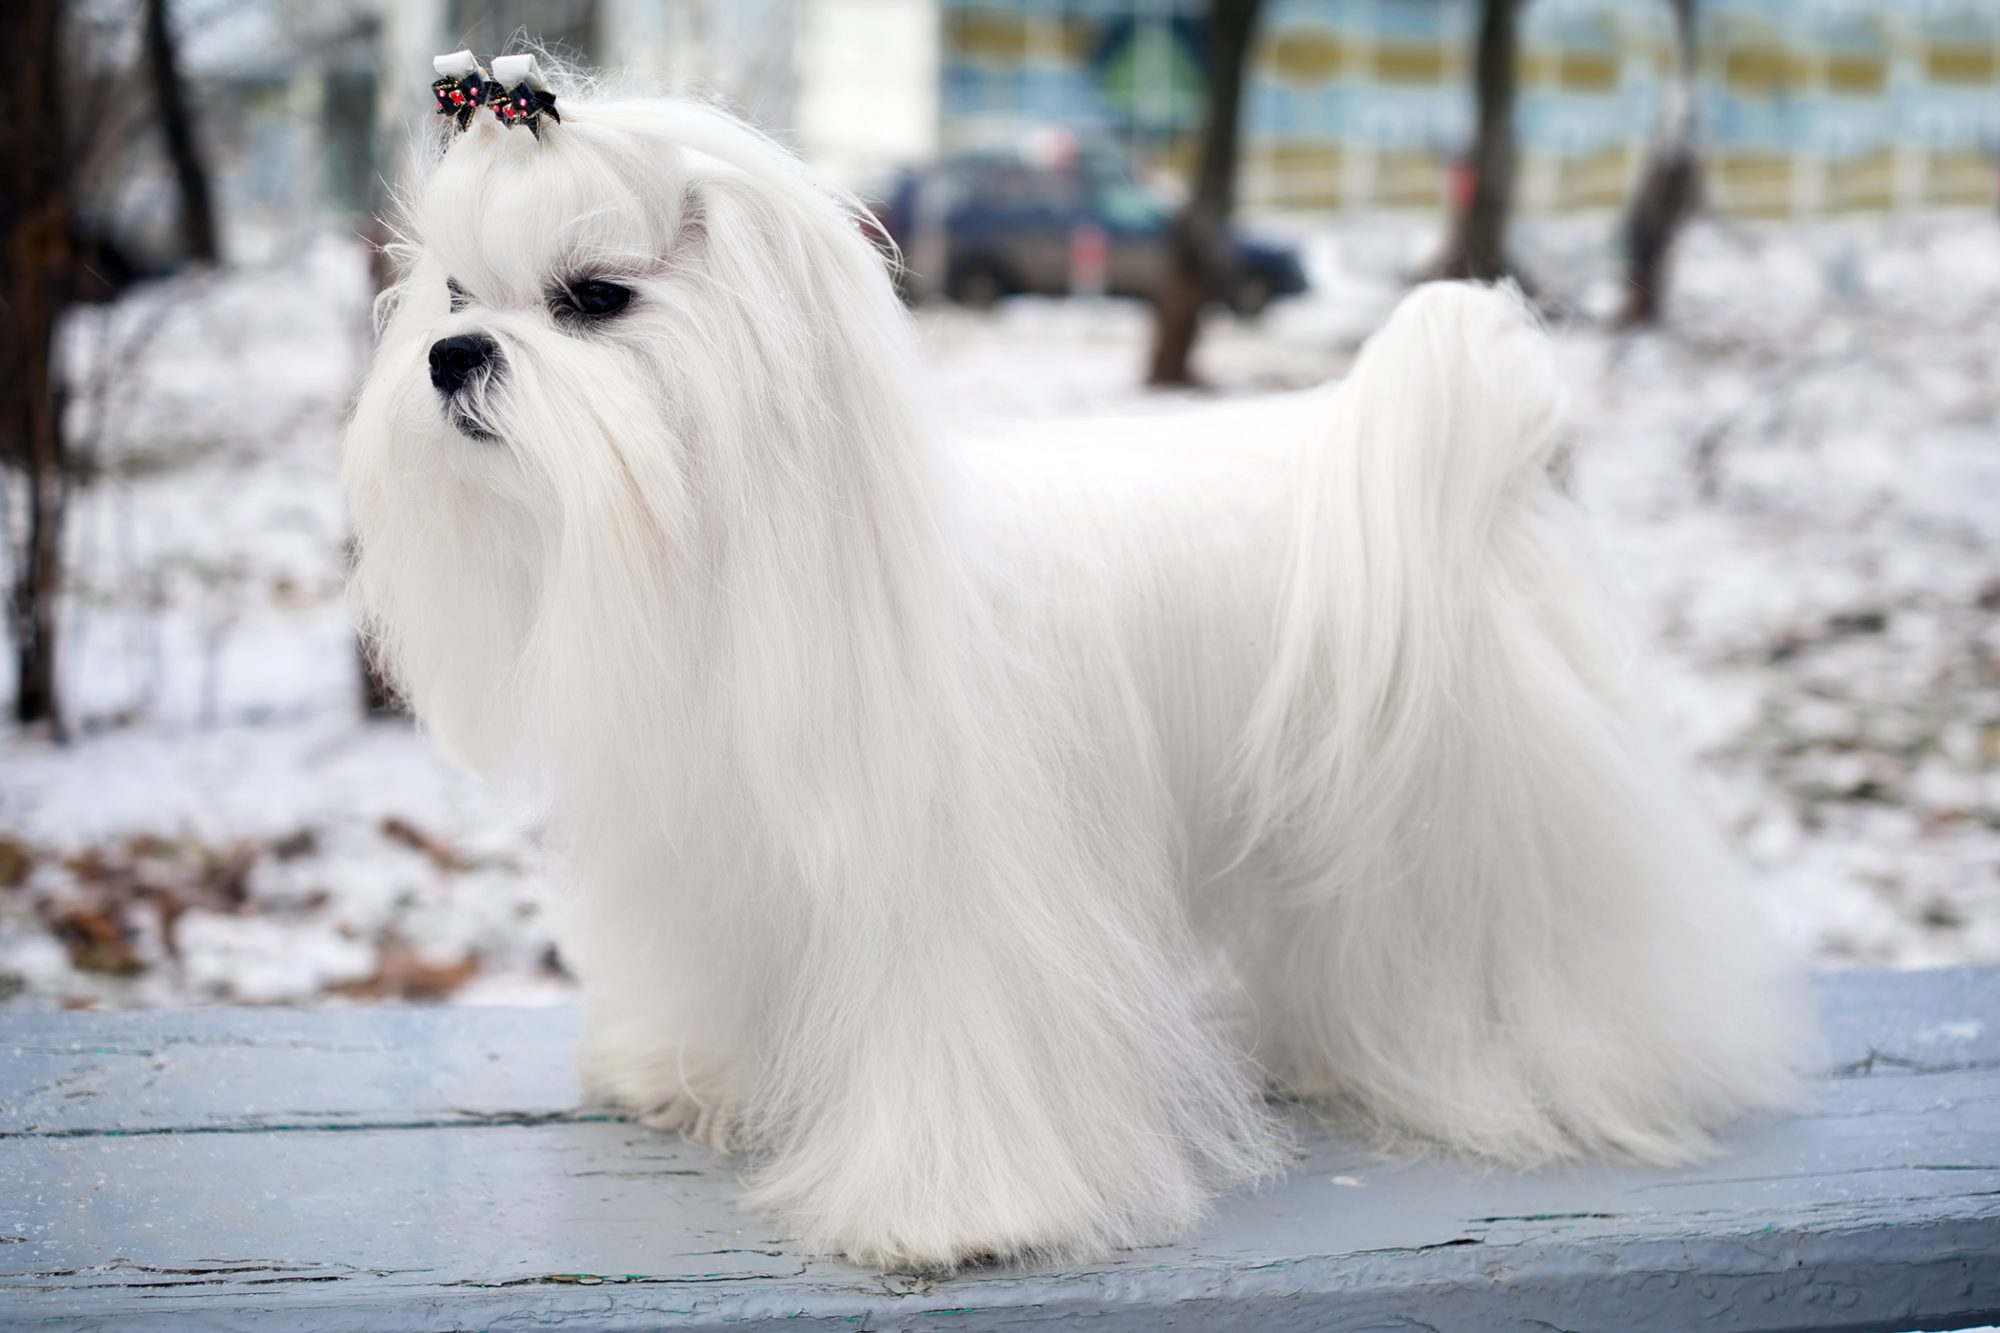 Maltese posing on a bench in the winter